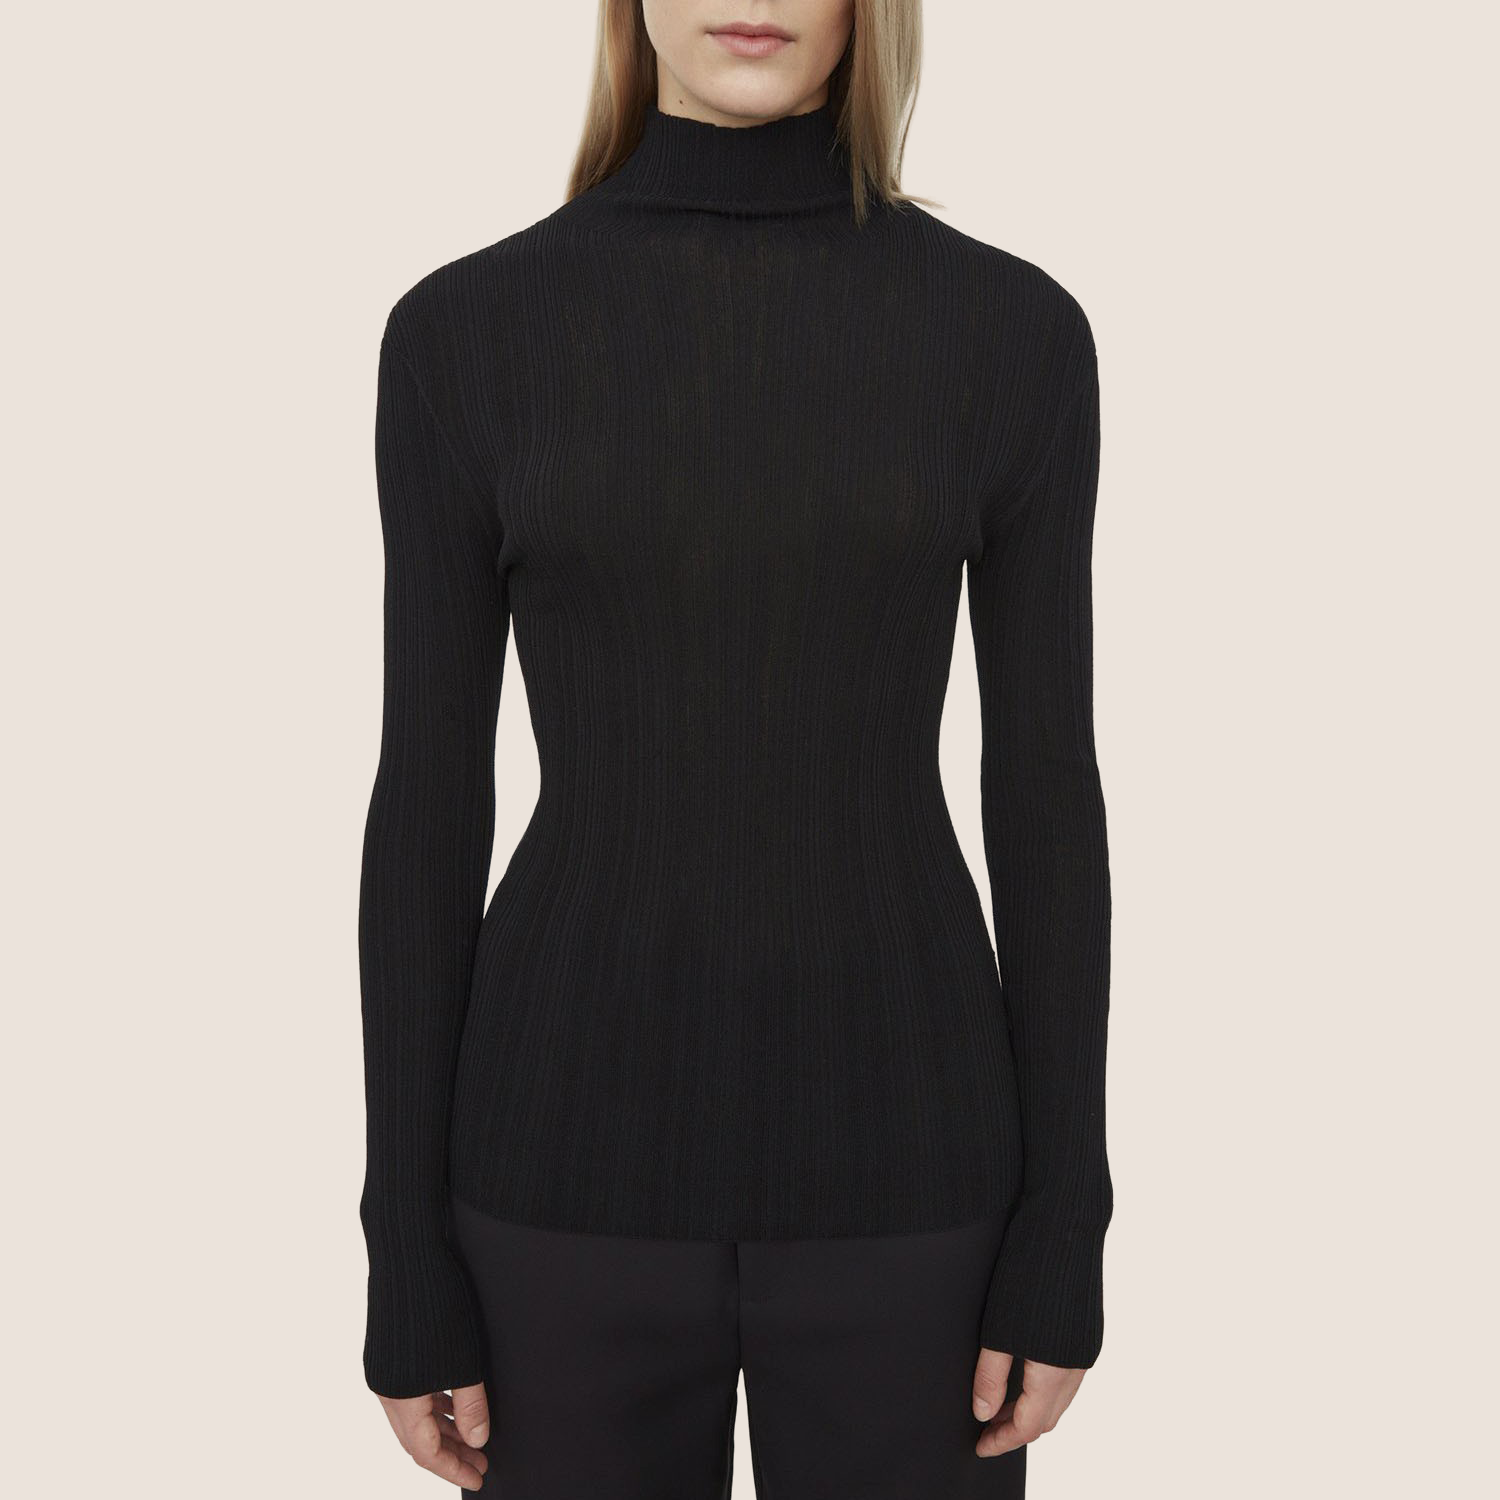 Narano Turtleneck